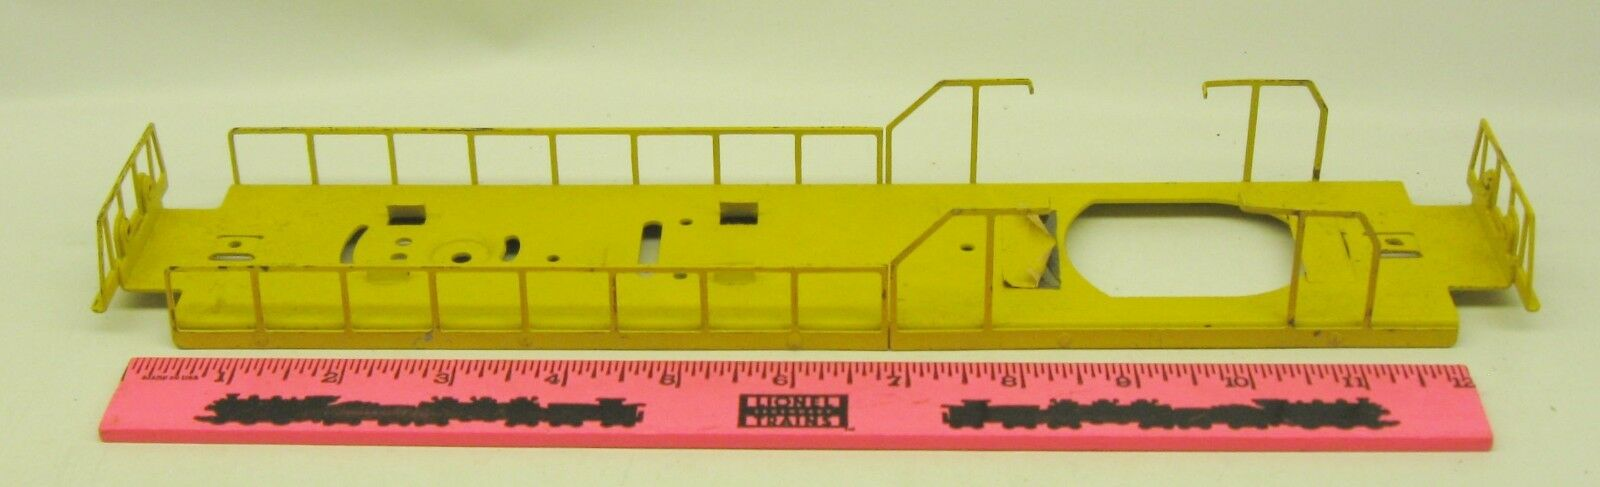 Lionel parts  Yellow Frame